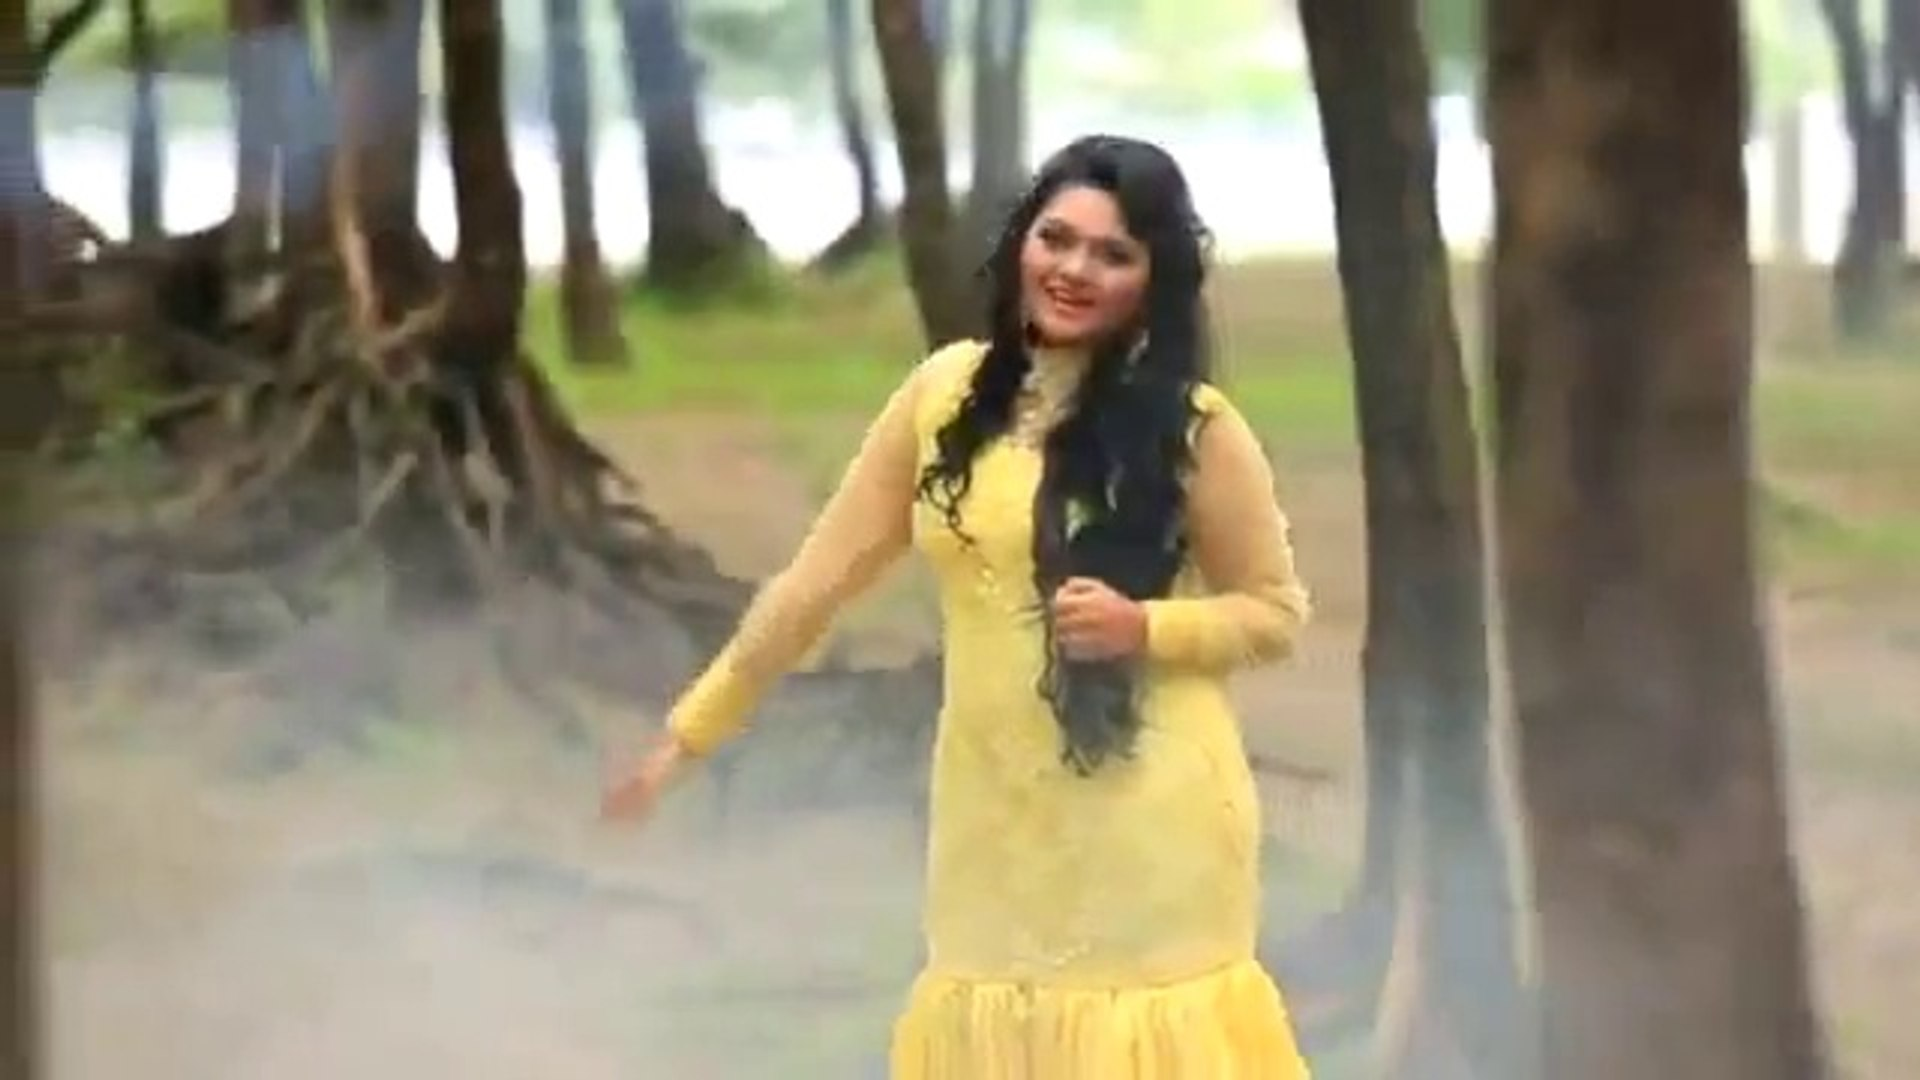 Bangla New Song Valobashar Janalay Belal Khan Saba Official Music Video ;Bangla New Song Valobashar